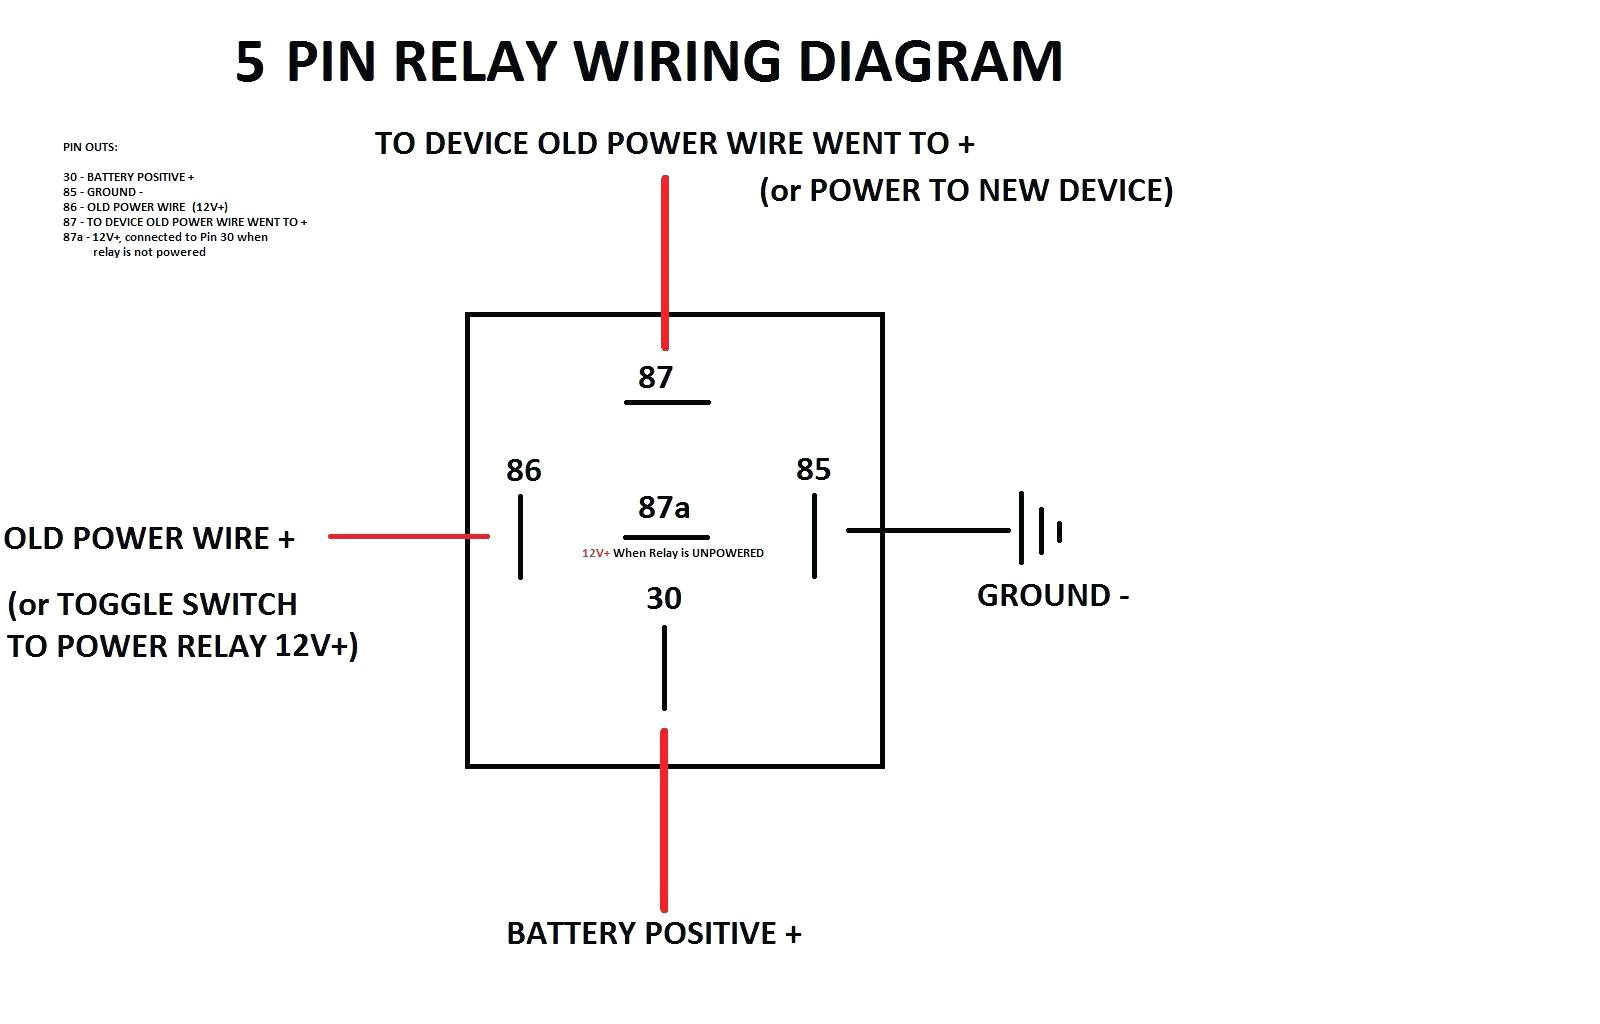 5 Prong Relay Wiring Diagram Wiring Diagram for Automotive Relay Wiring Diagram Mega